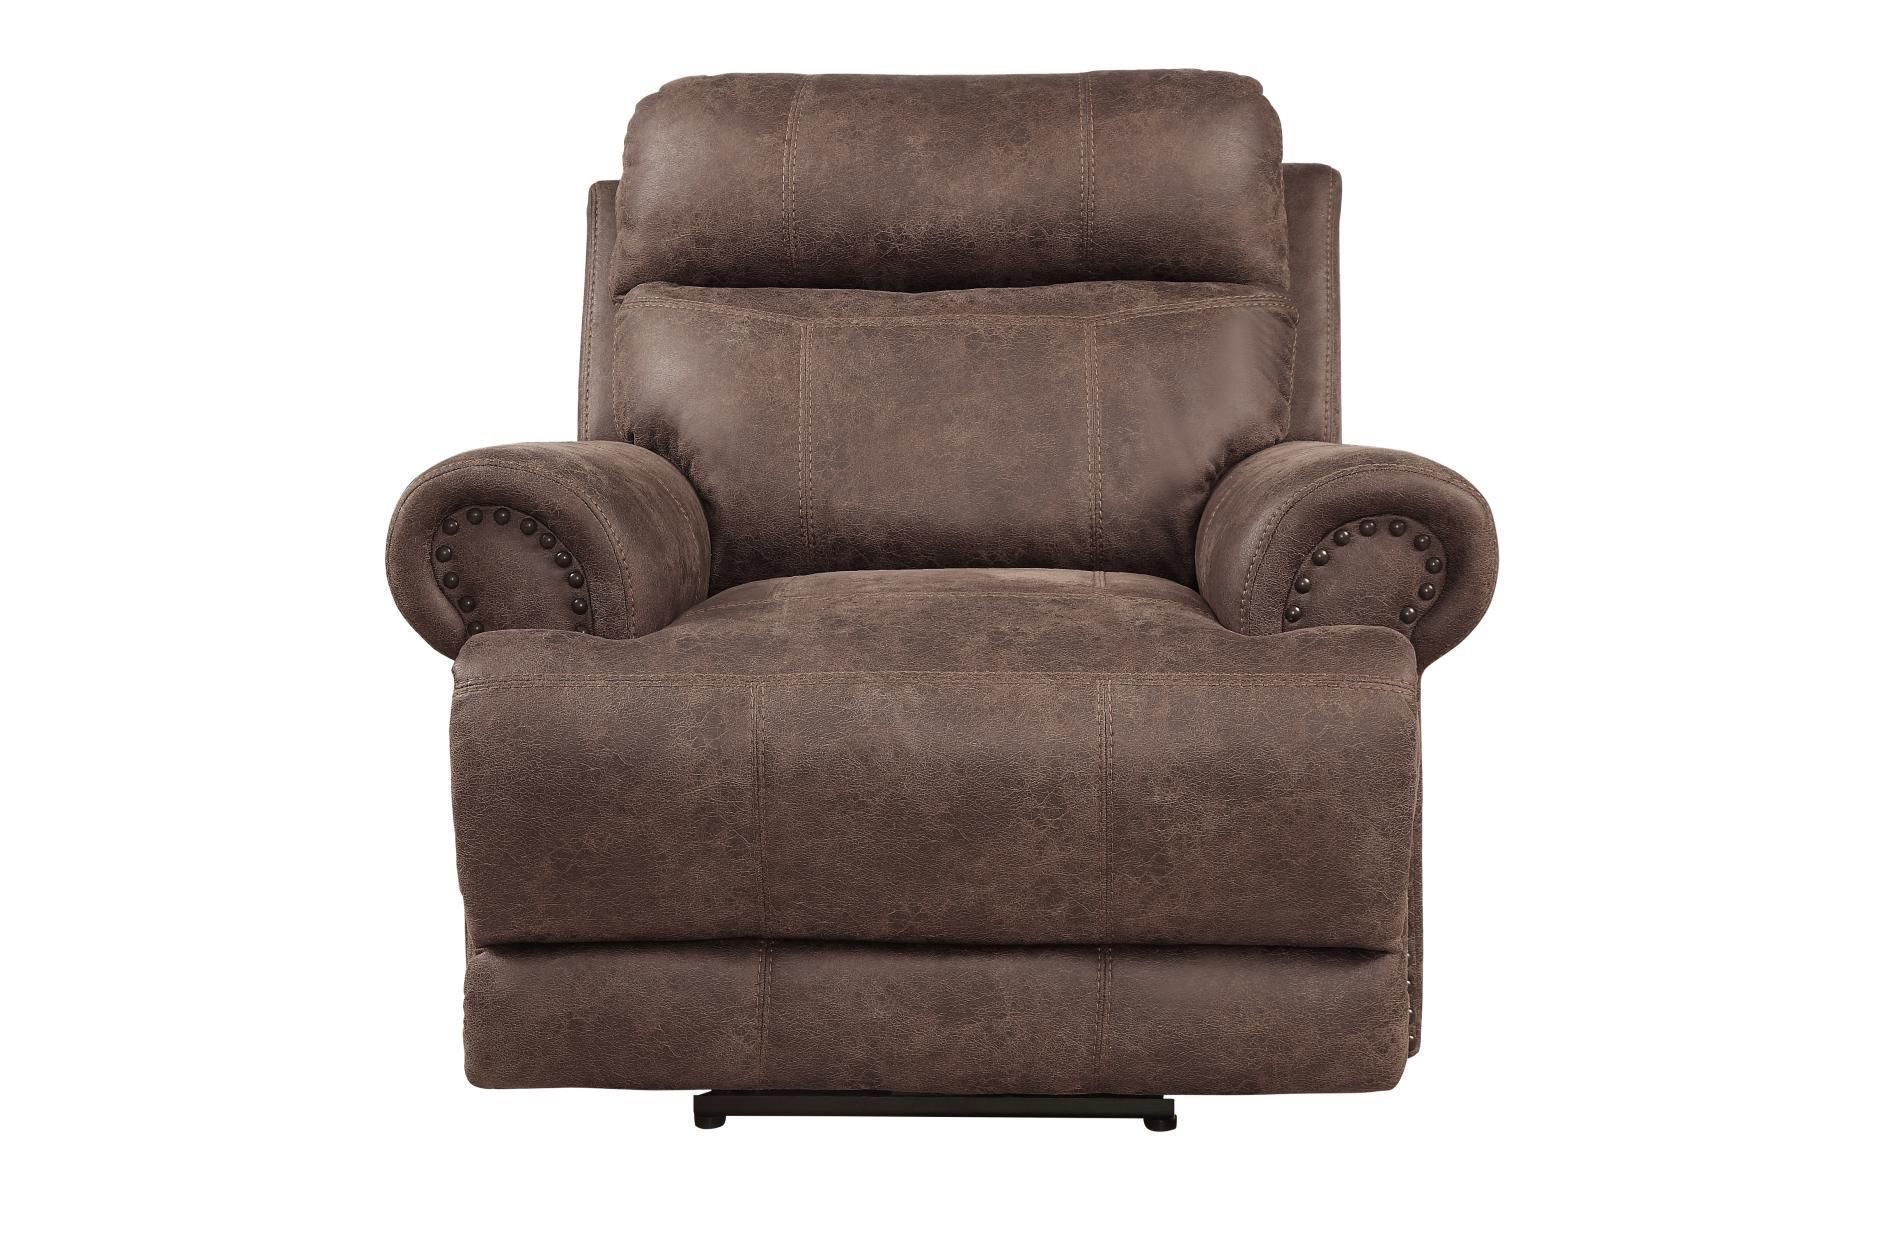 Polyester Glider Recliner Chair With Nail Head Trims Dark Brown Glider Recliner Chair Glider Recliner Recliner